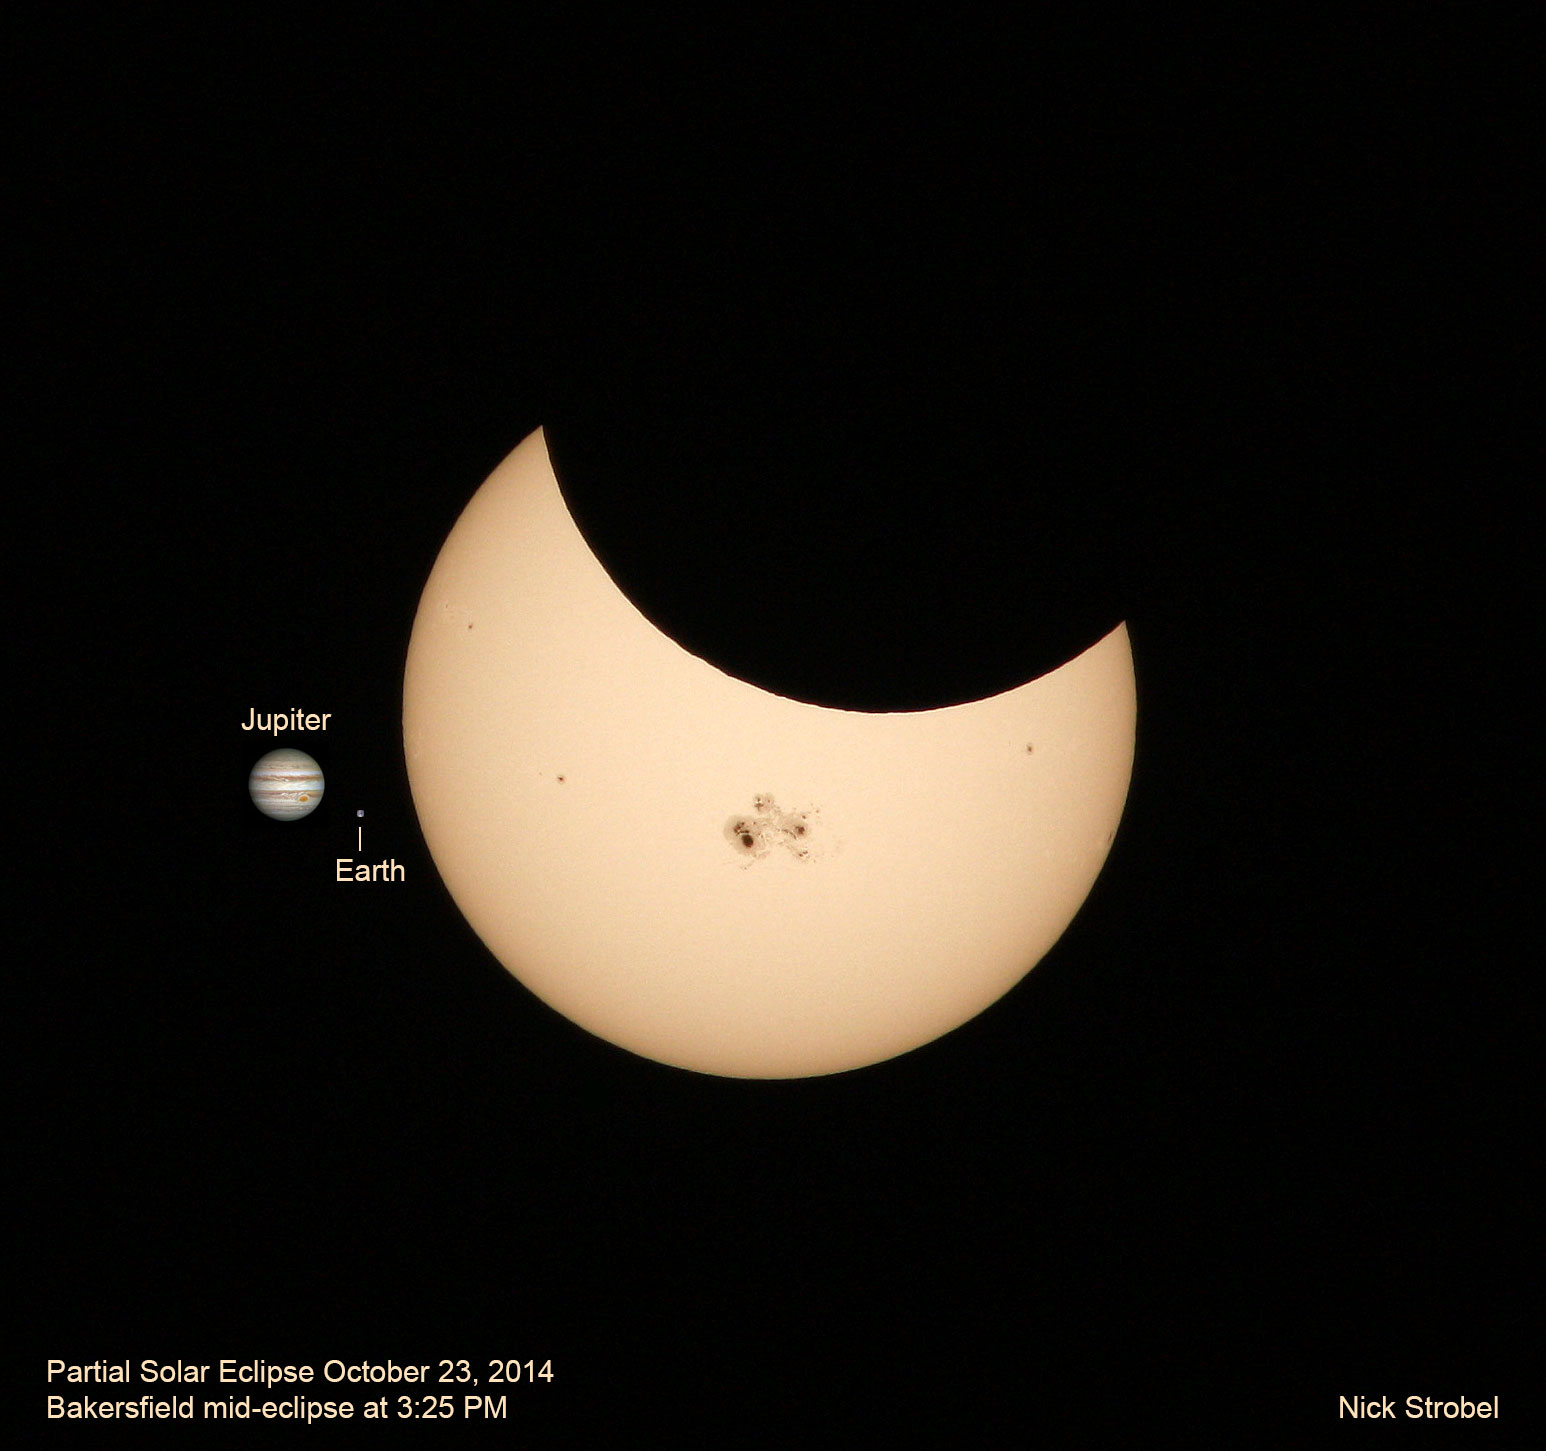 October 23, 2014 partial solar eclipse with Jupiter and Earth for scale